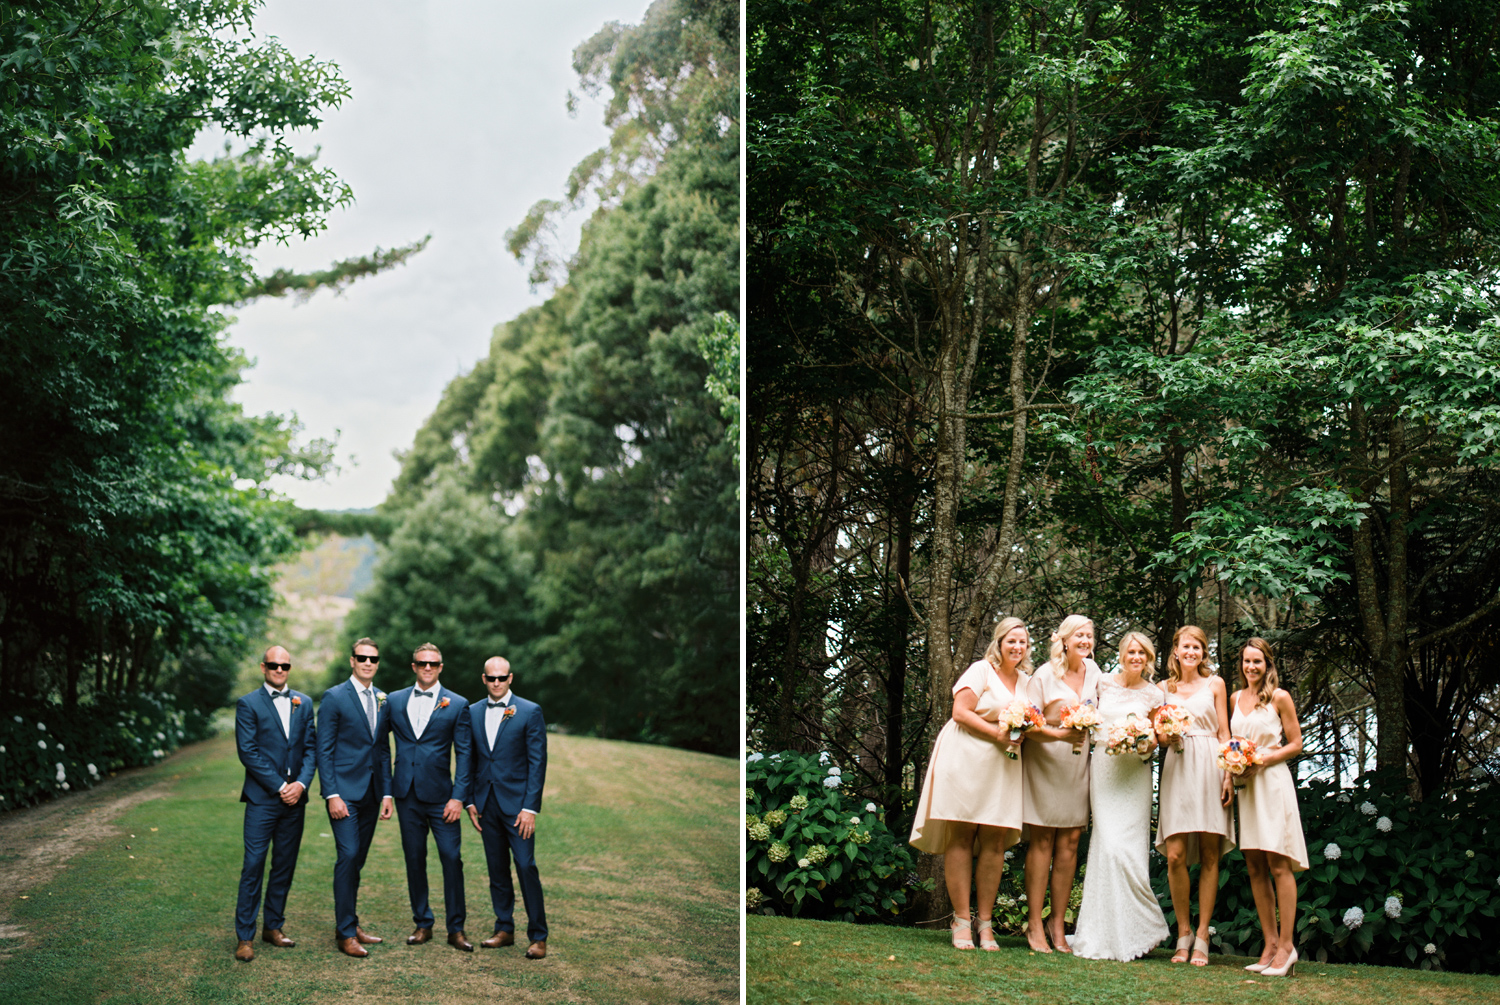 new-zealand-wedding-film-photographer-ryan-flynn-0017.JPG